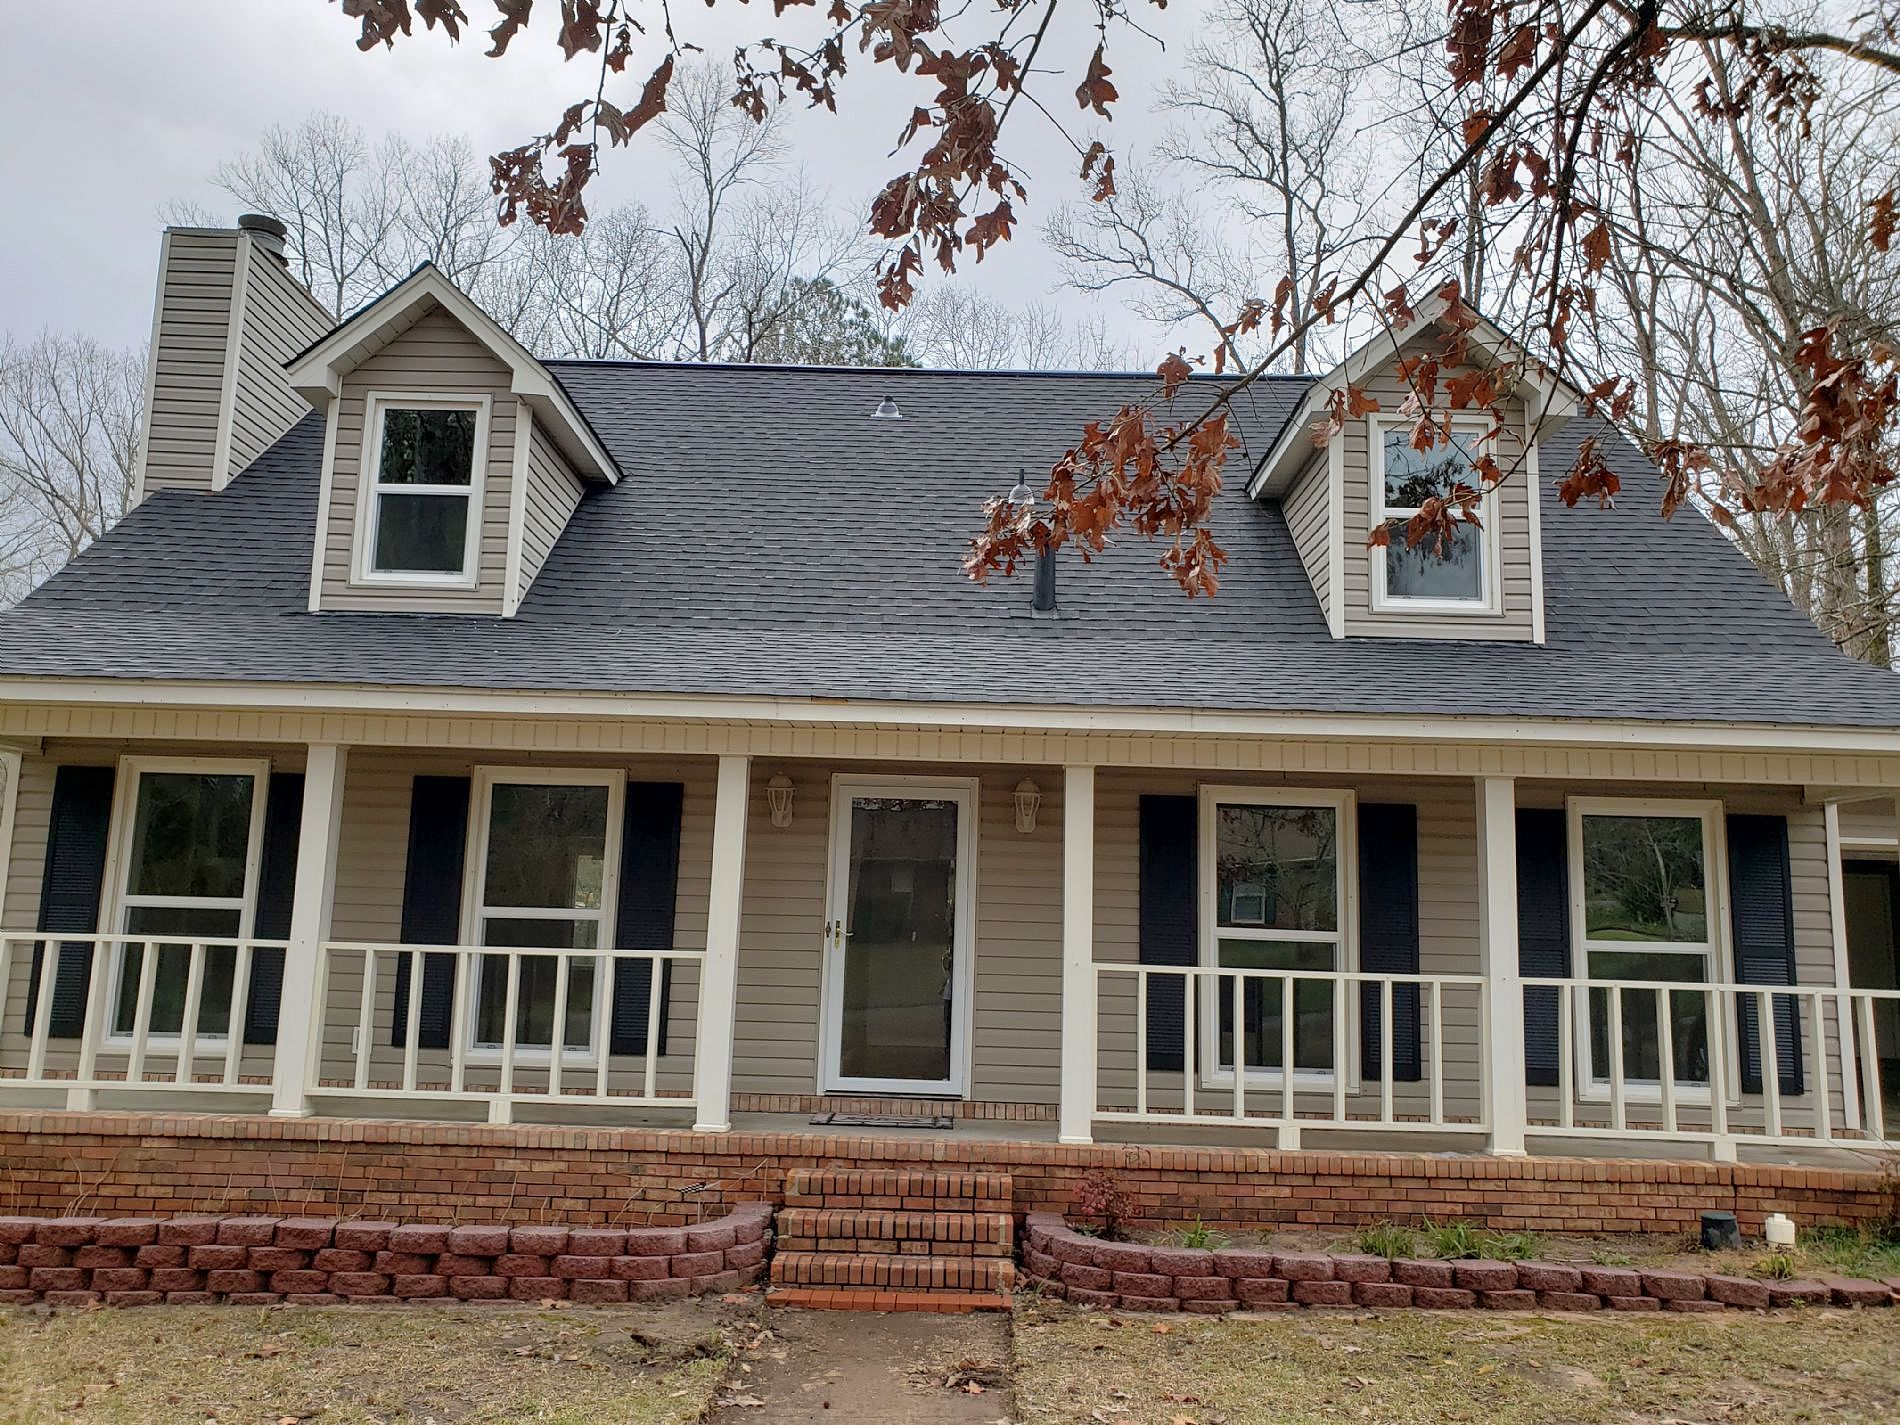 3 Bedrooms / 2.5 Bathrooms - Est. $1,620.00 / Month* for rent in Tuscaloosa, AL